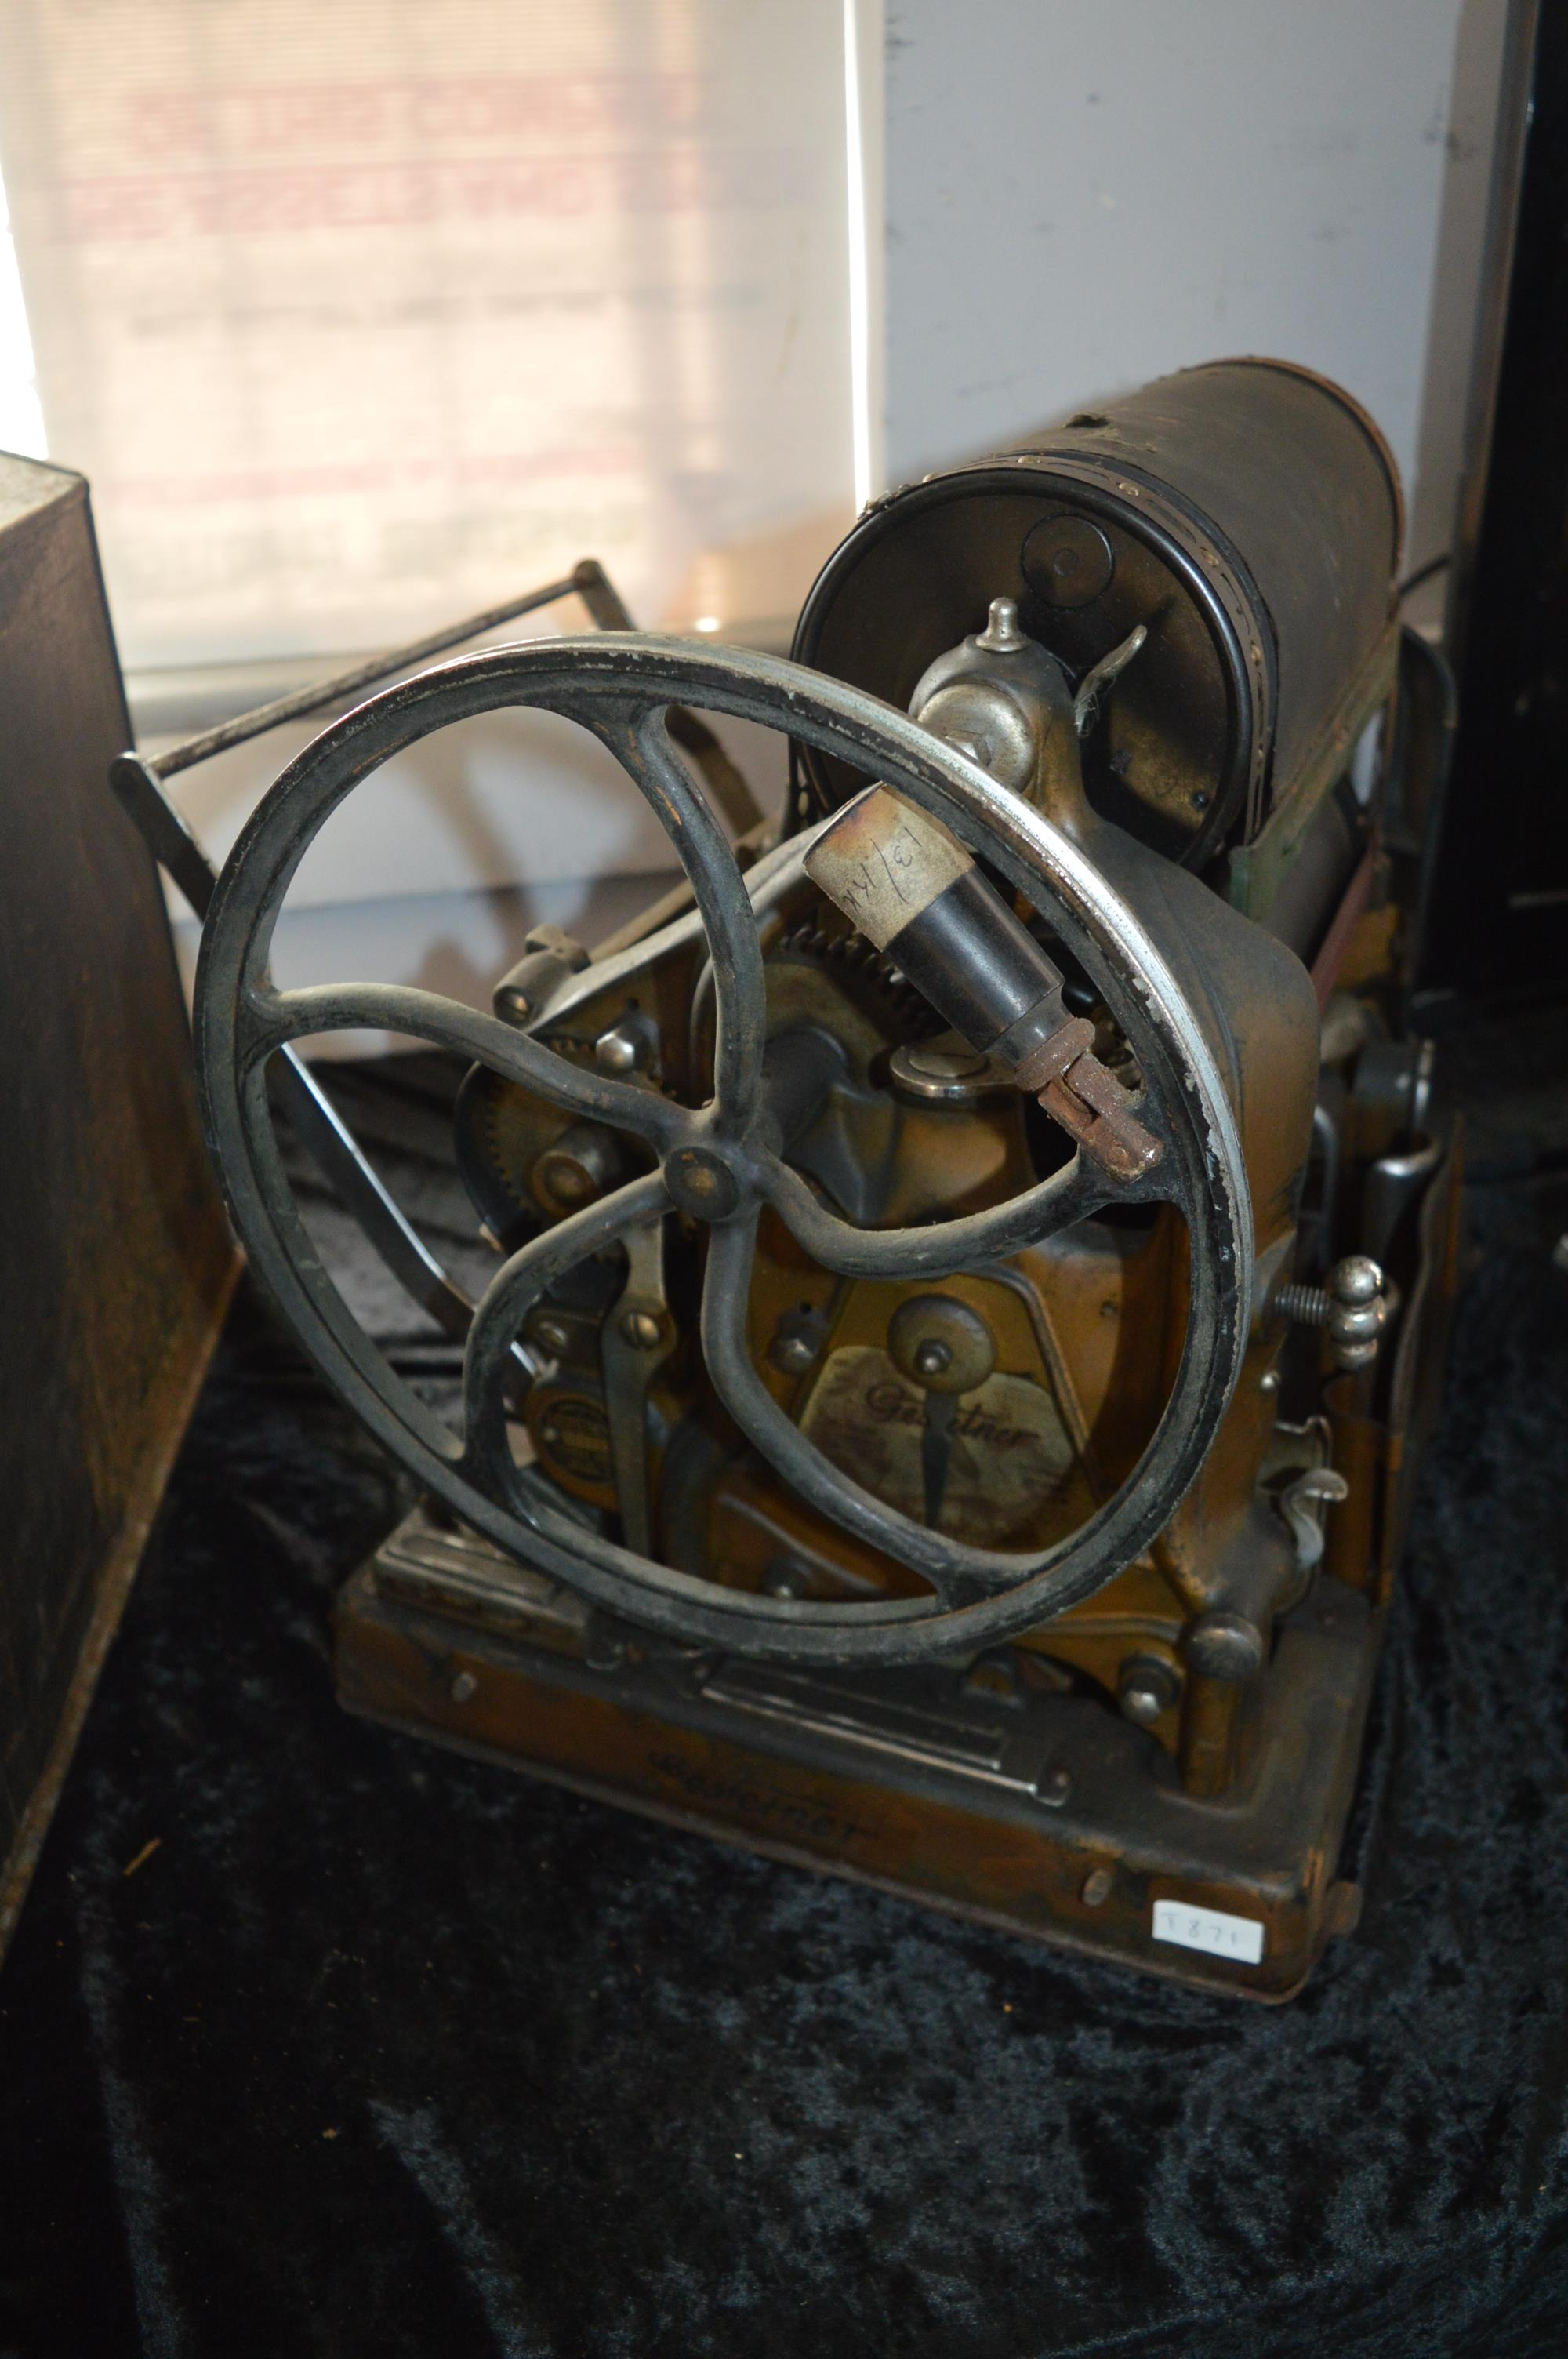 Gestetner Duplicating Machine with Original Carry Case - Image 4 of 4